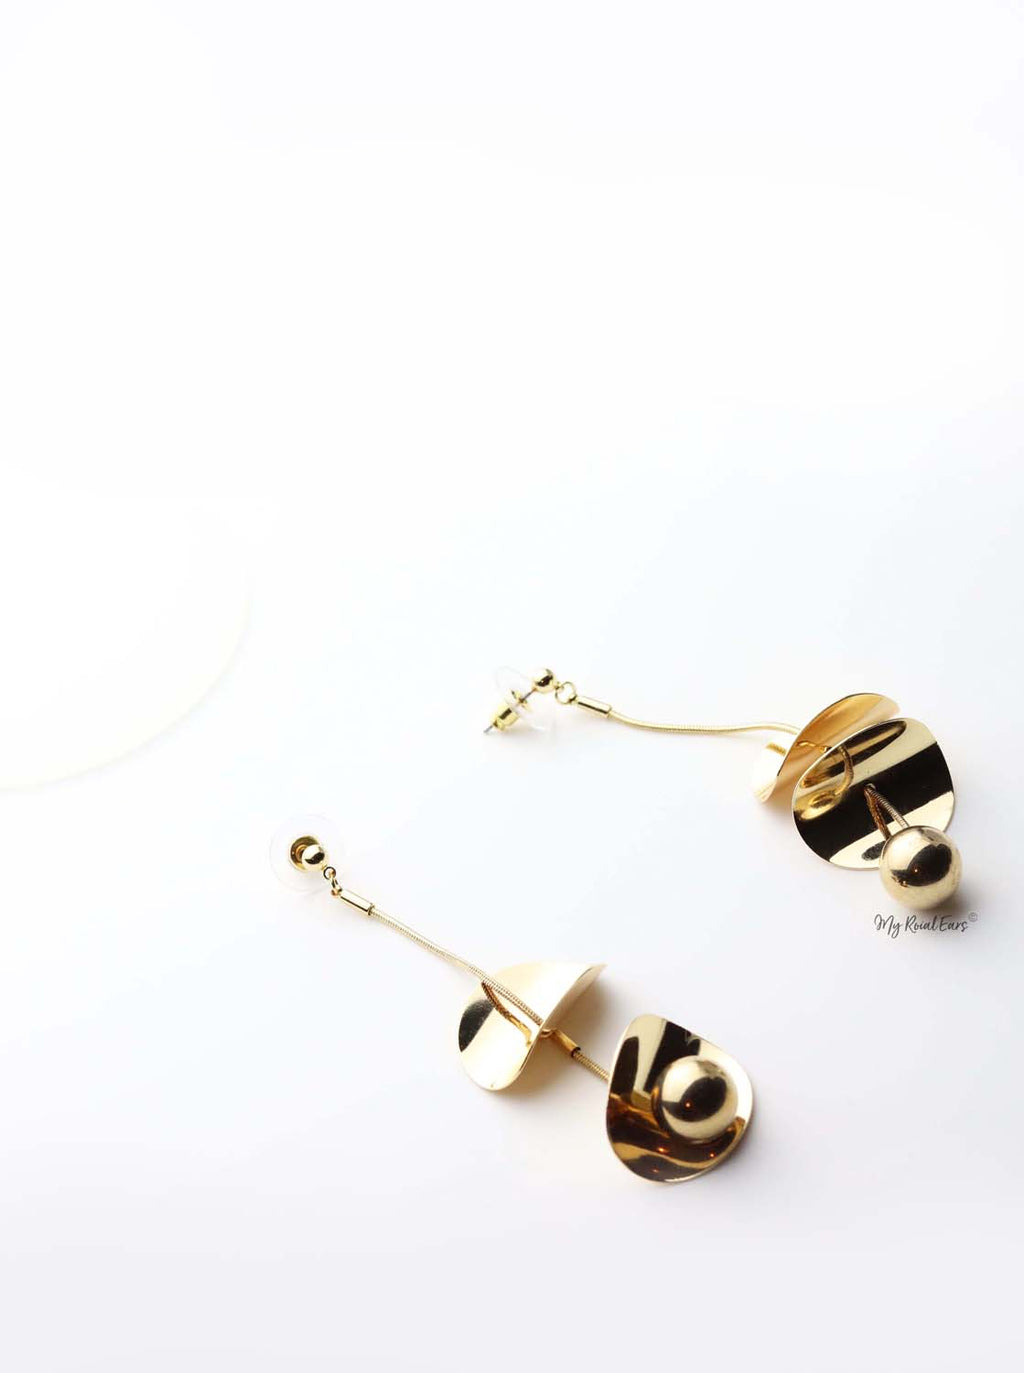 Melete- gold plated long ball drop earrings - My Roial Ears LTD